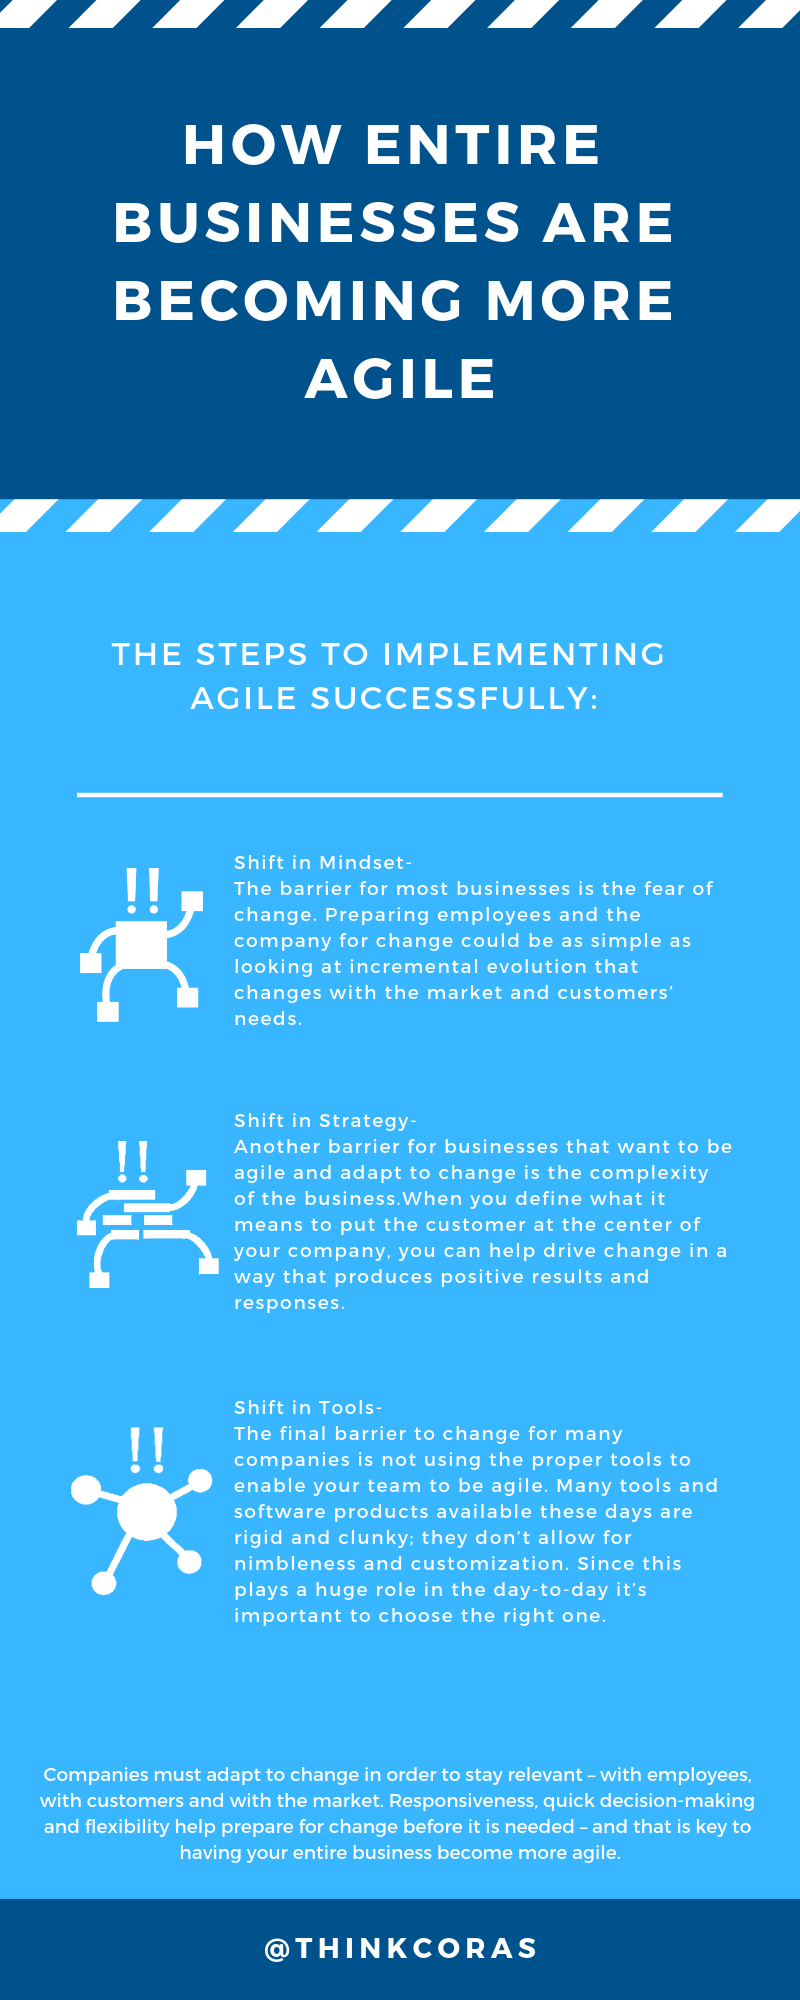 Three Ways Entire Businesses Are Becoming More Agile